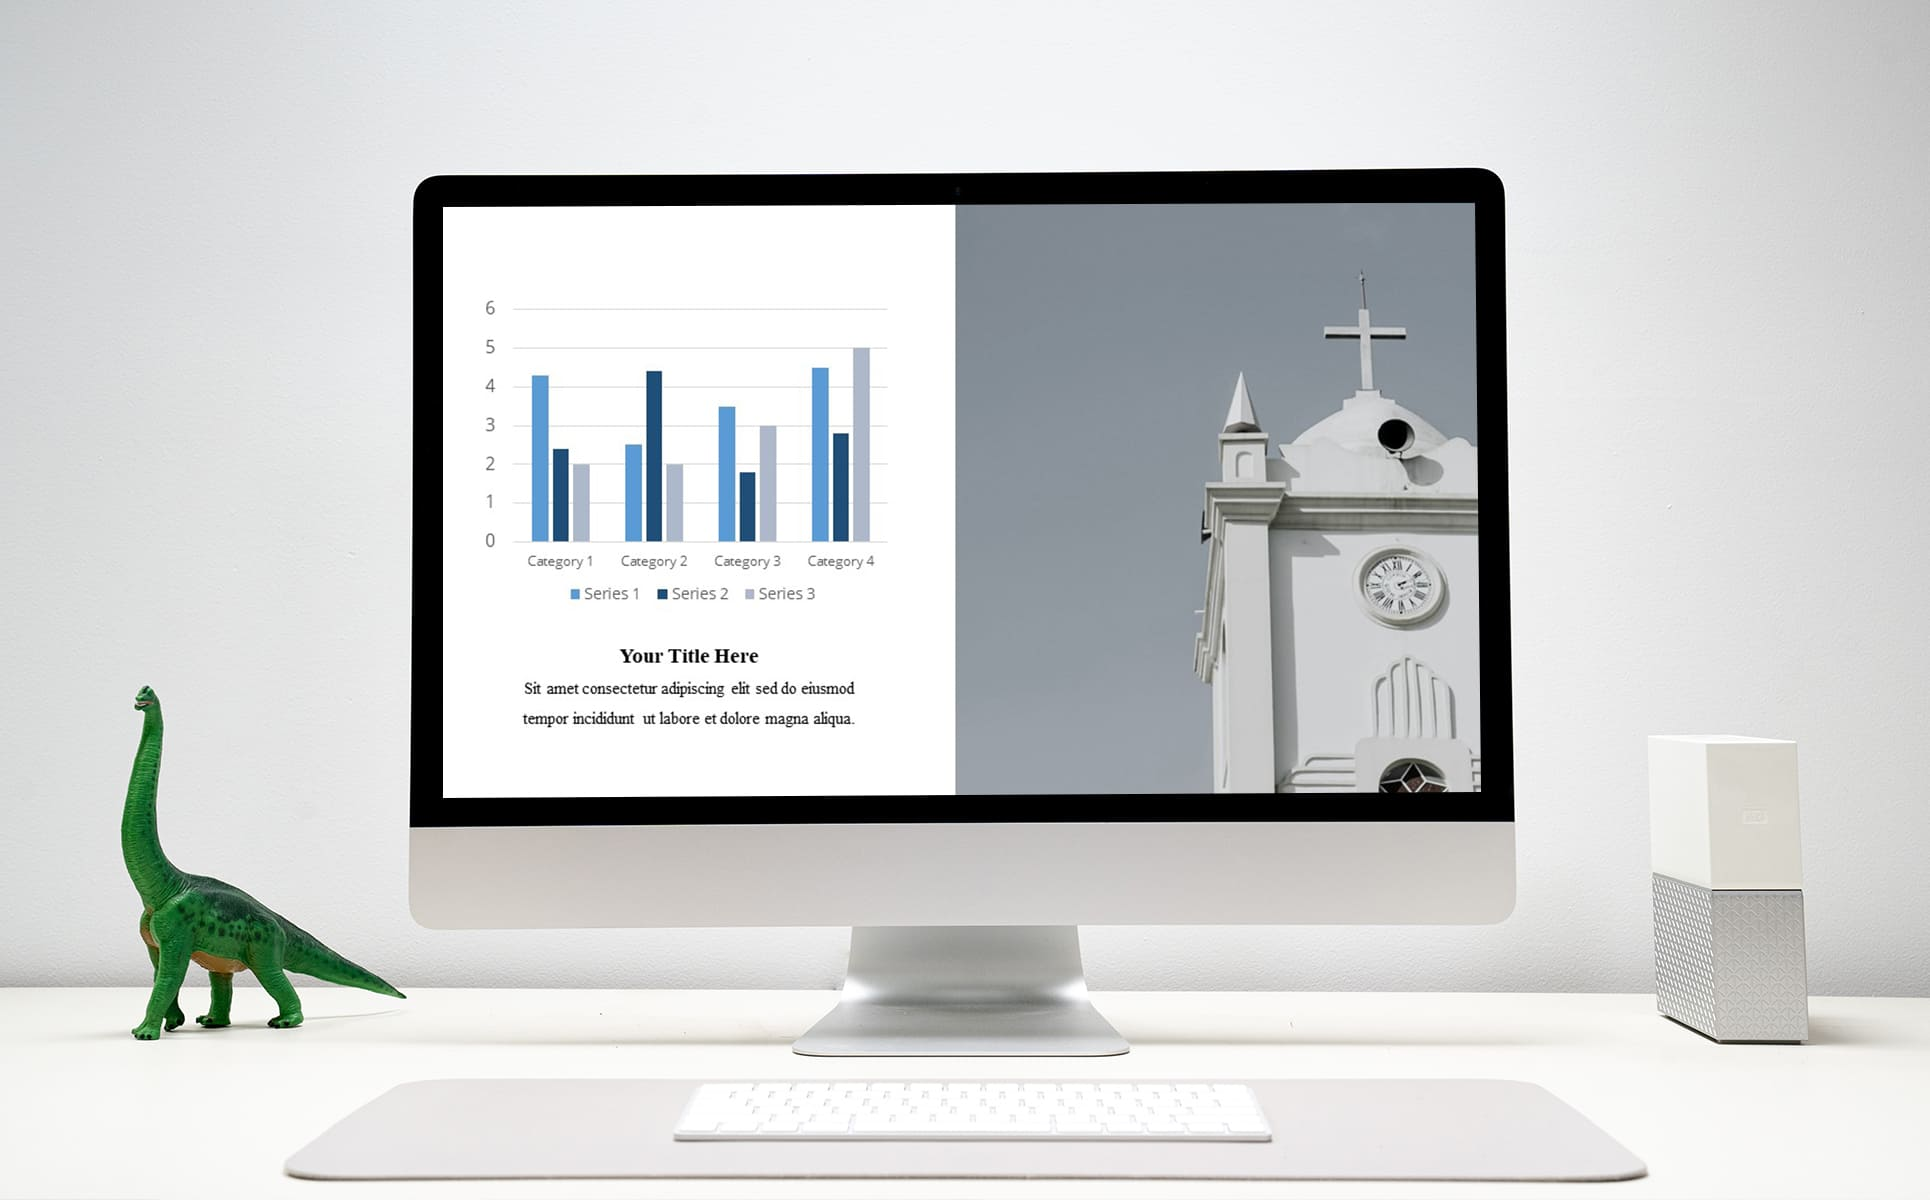 worship service powerpoint background images-3